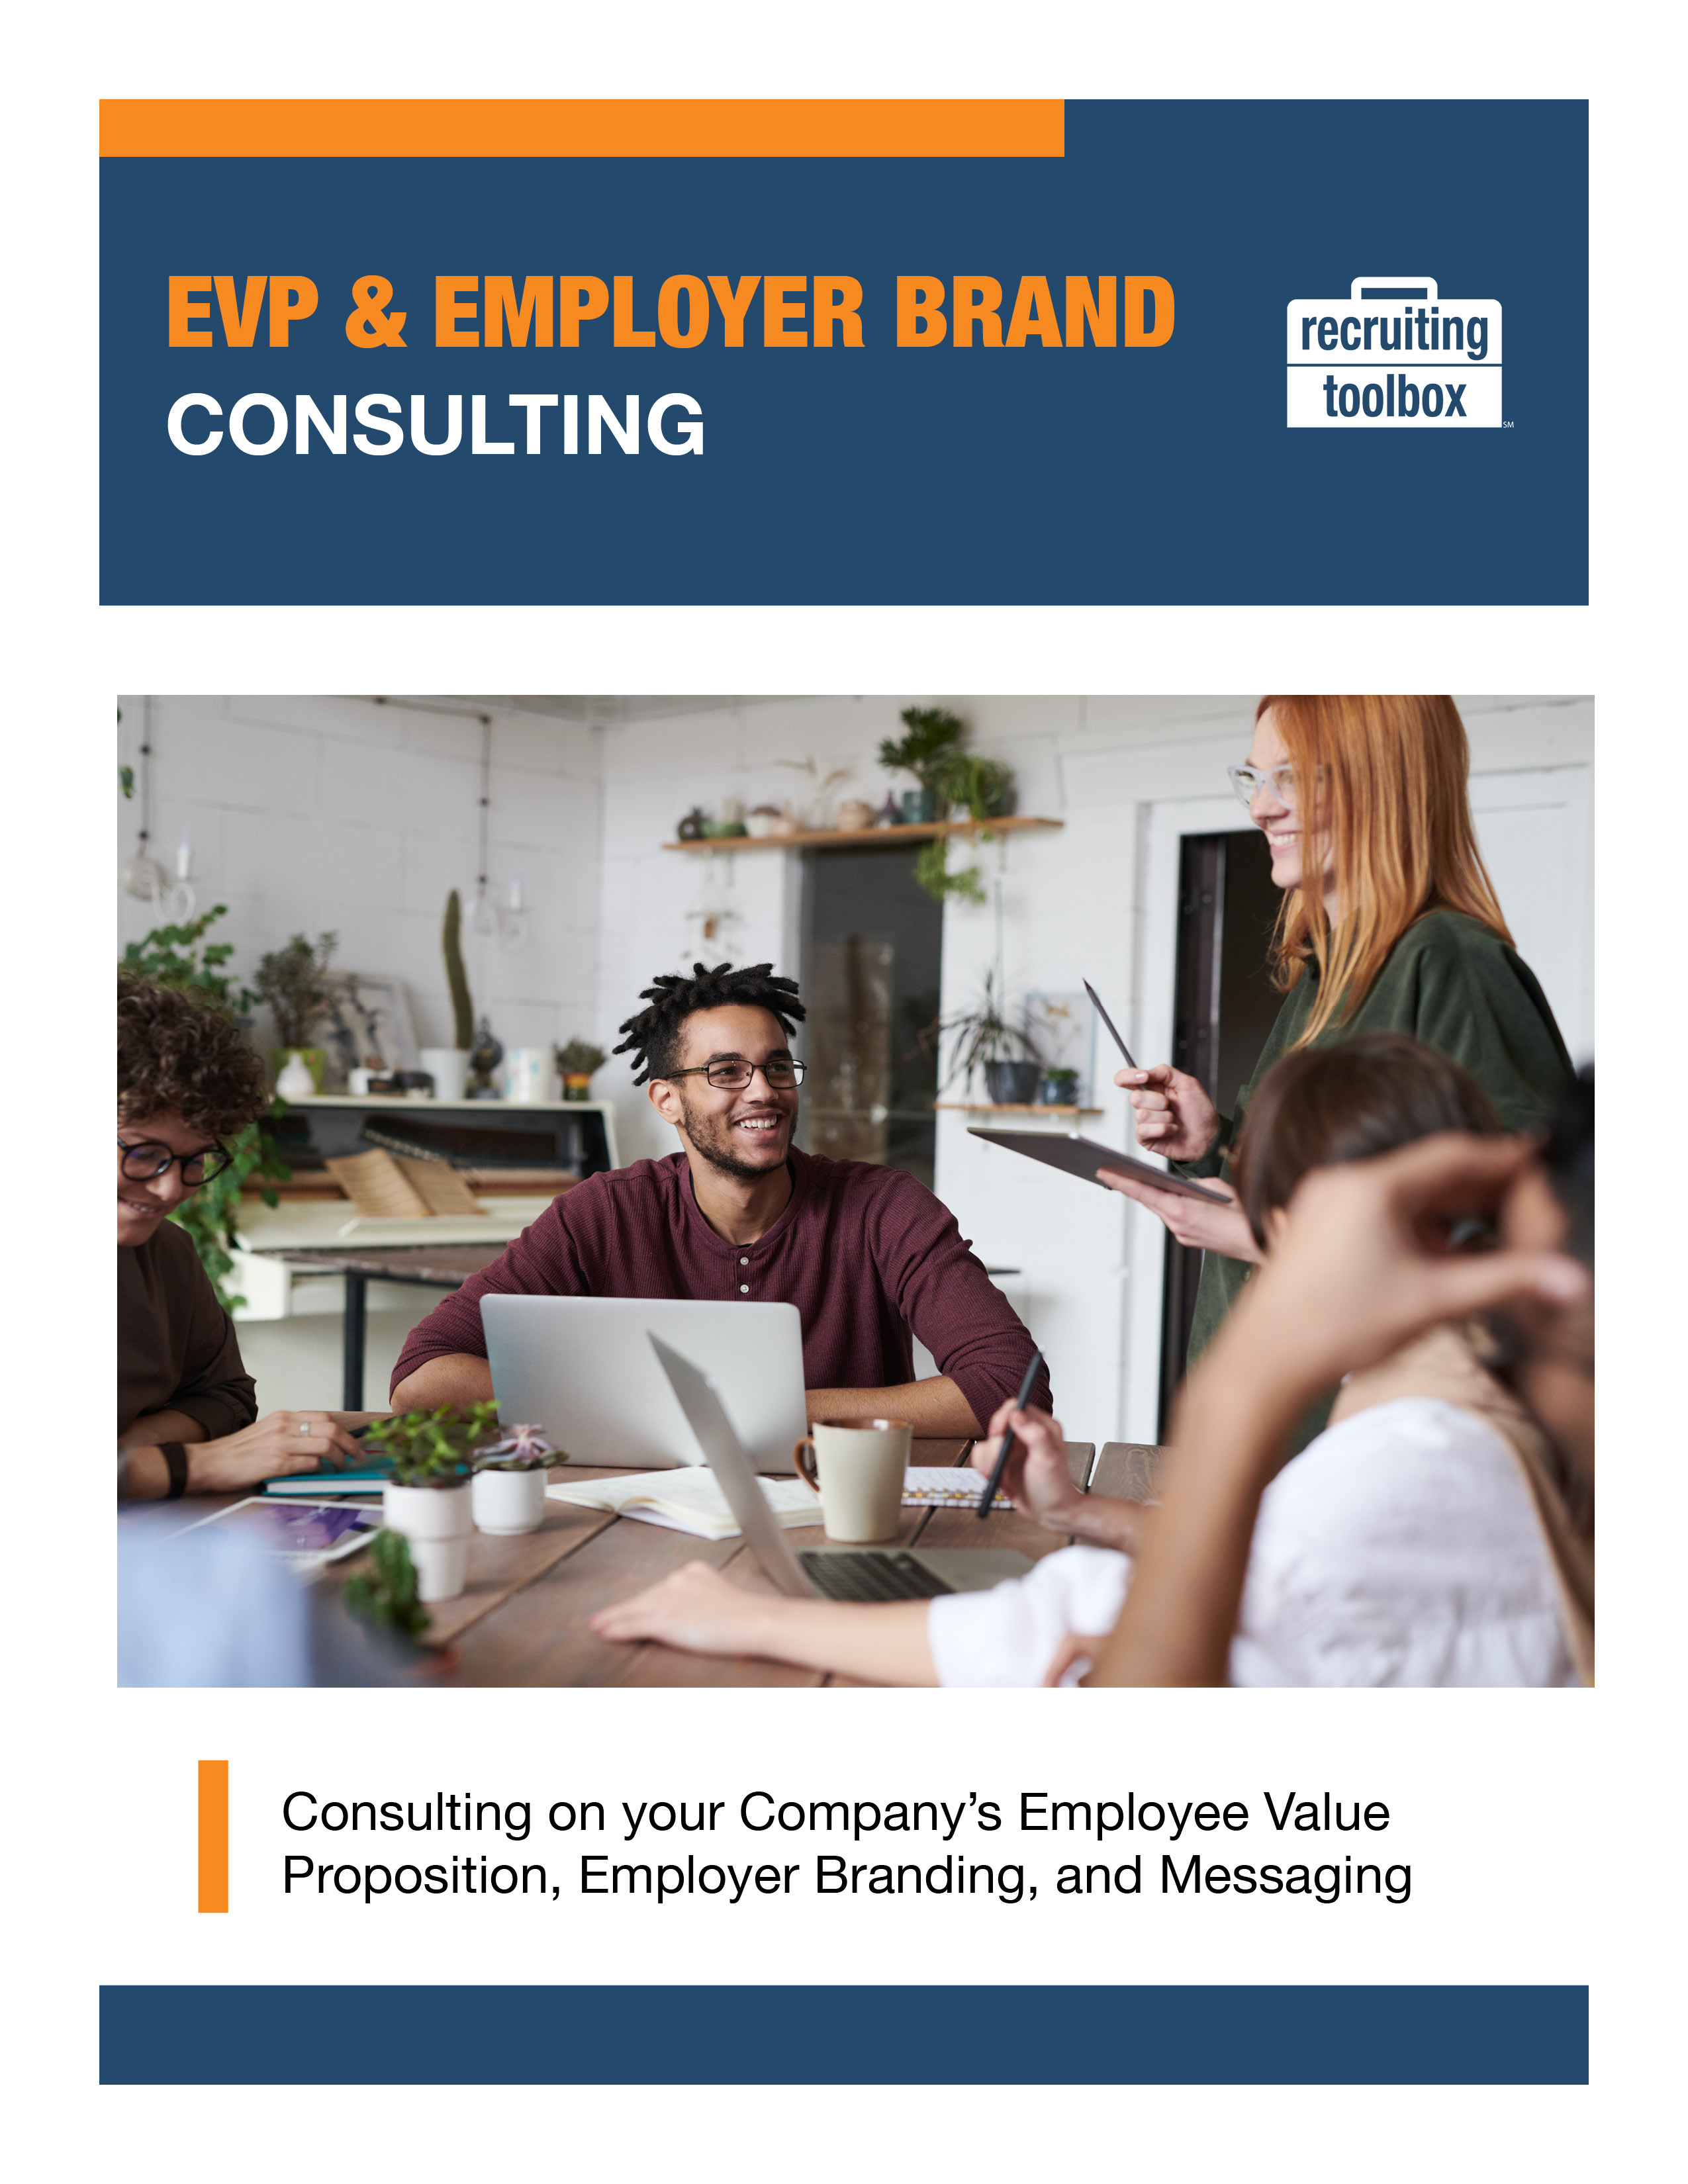 EVP Consulting Overview